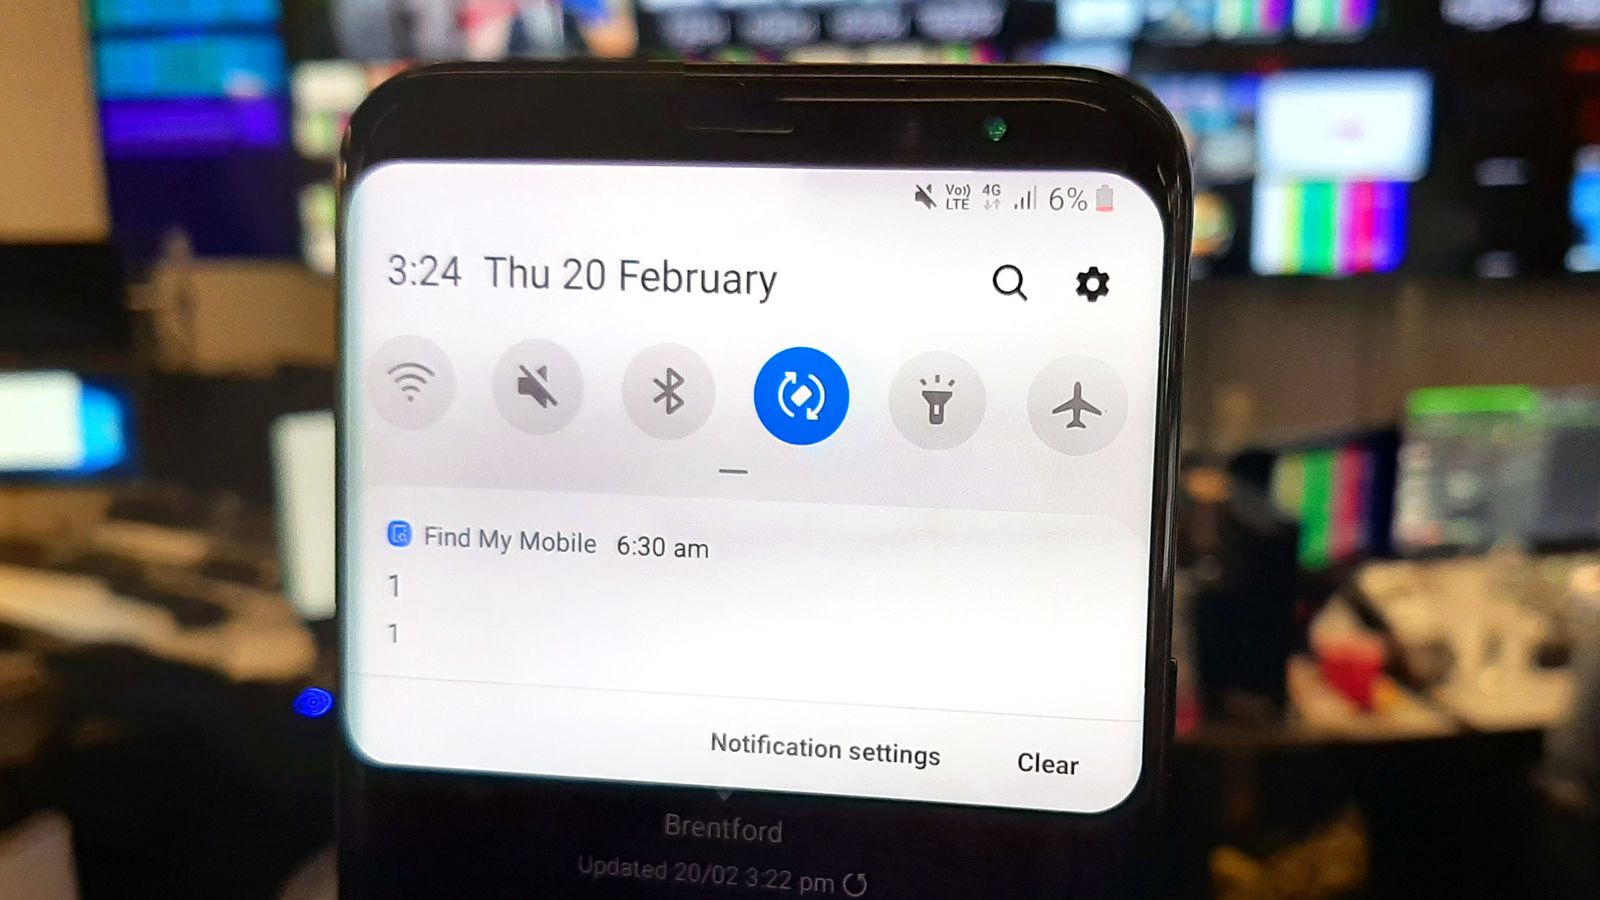 Samsung users 'freaked' by accidental overnight alert